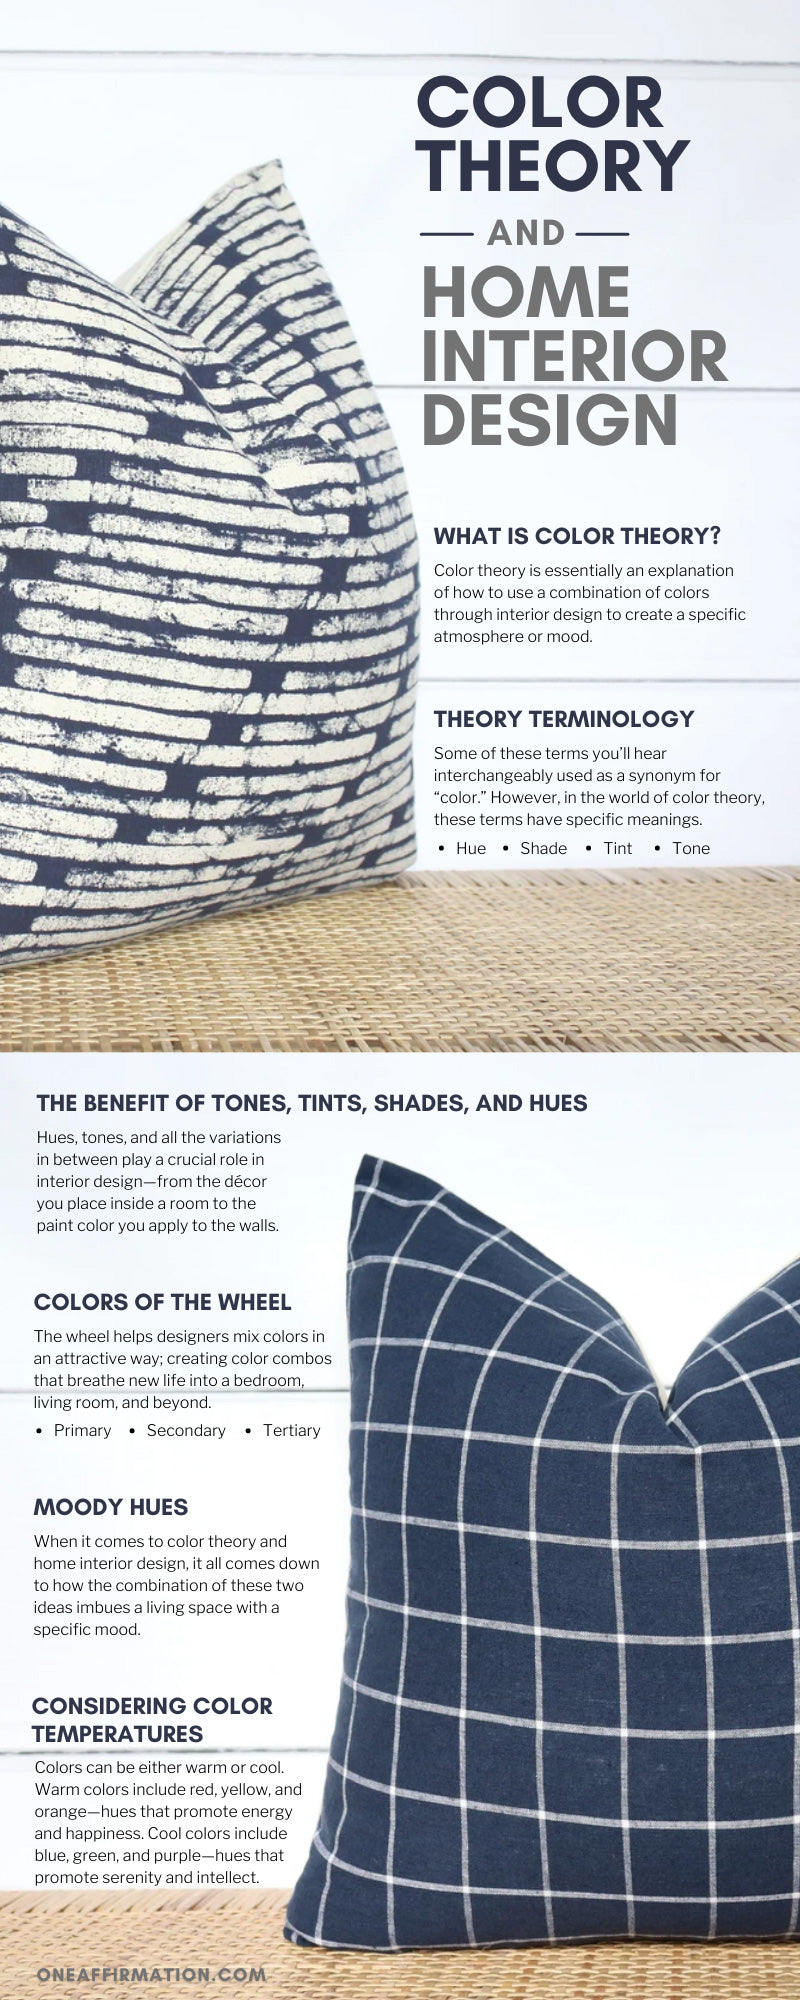 Color Theory and Home Interior Design